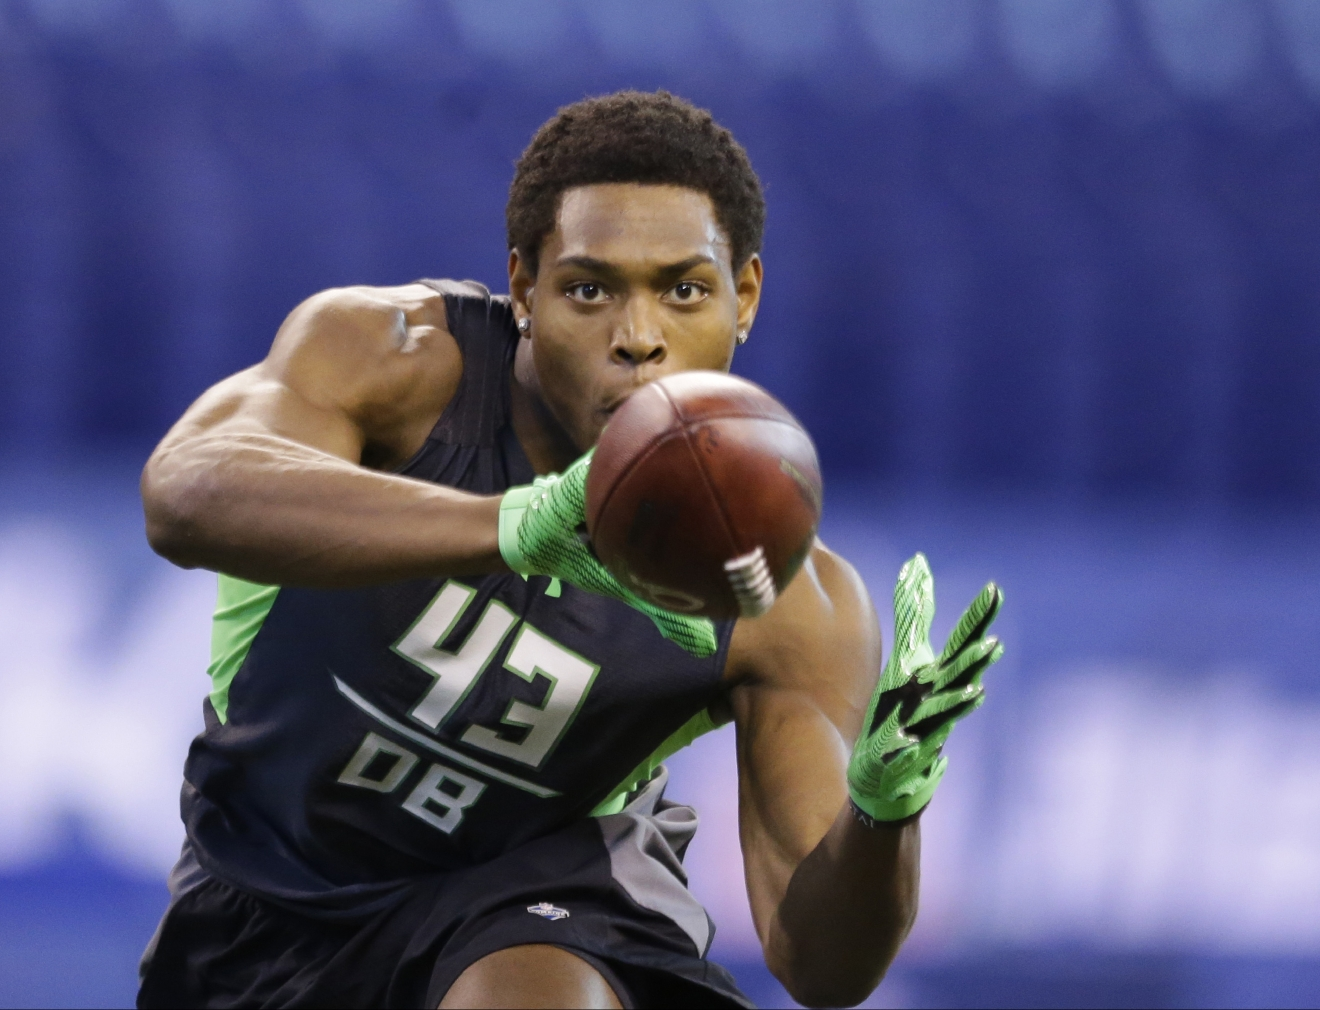 FILE - In this Feb. 29, 2016, file photo, Florida State defensive back Jalen Ramsey runs a drill at the NFL football scouting combine in Indianapolis. With the Rams and Eagles having traded up to secure the top two spots, where they have said they will take quarterbacks, it's San Diego that likely will determine the flow on Thursday night. What direction for the Chargers with the third selection? Perhaps Ramsey, considered one of the best athletes and most NFL-ready players available. (AP Photo/Michael Conroy, File)